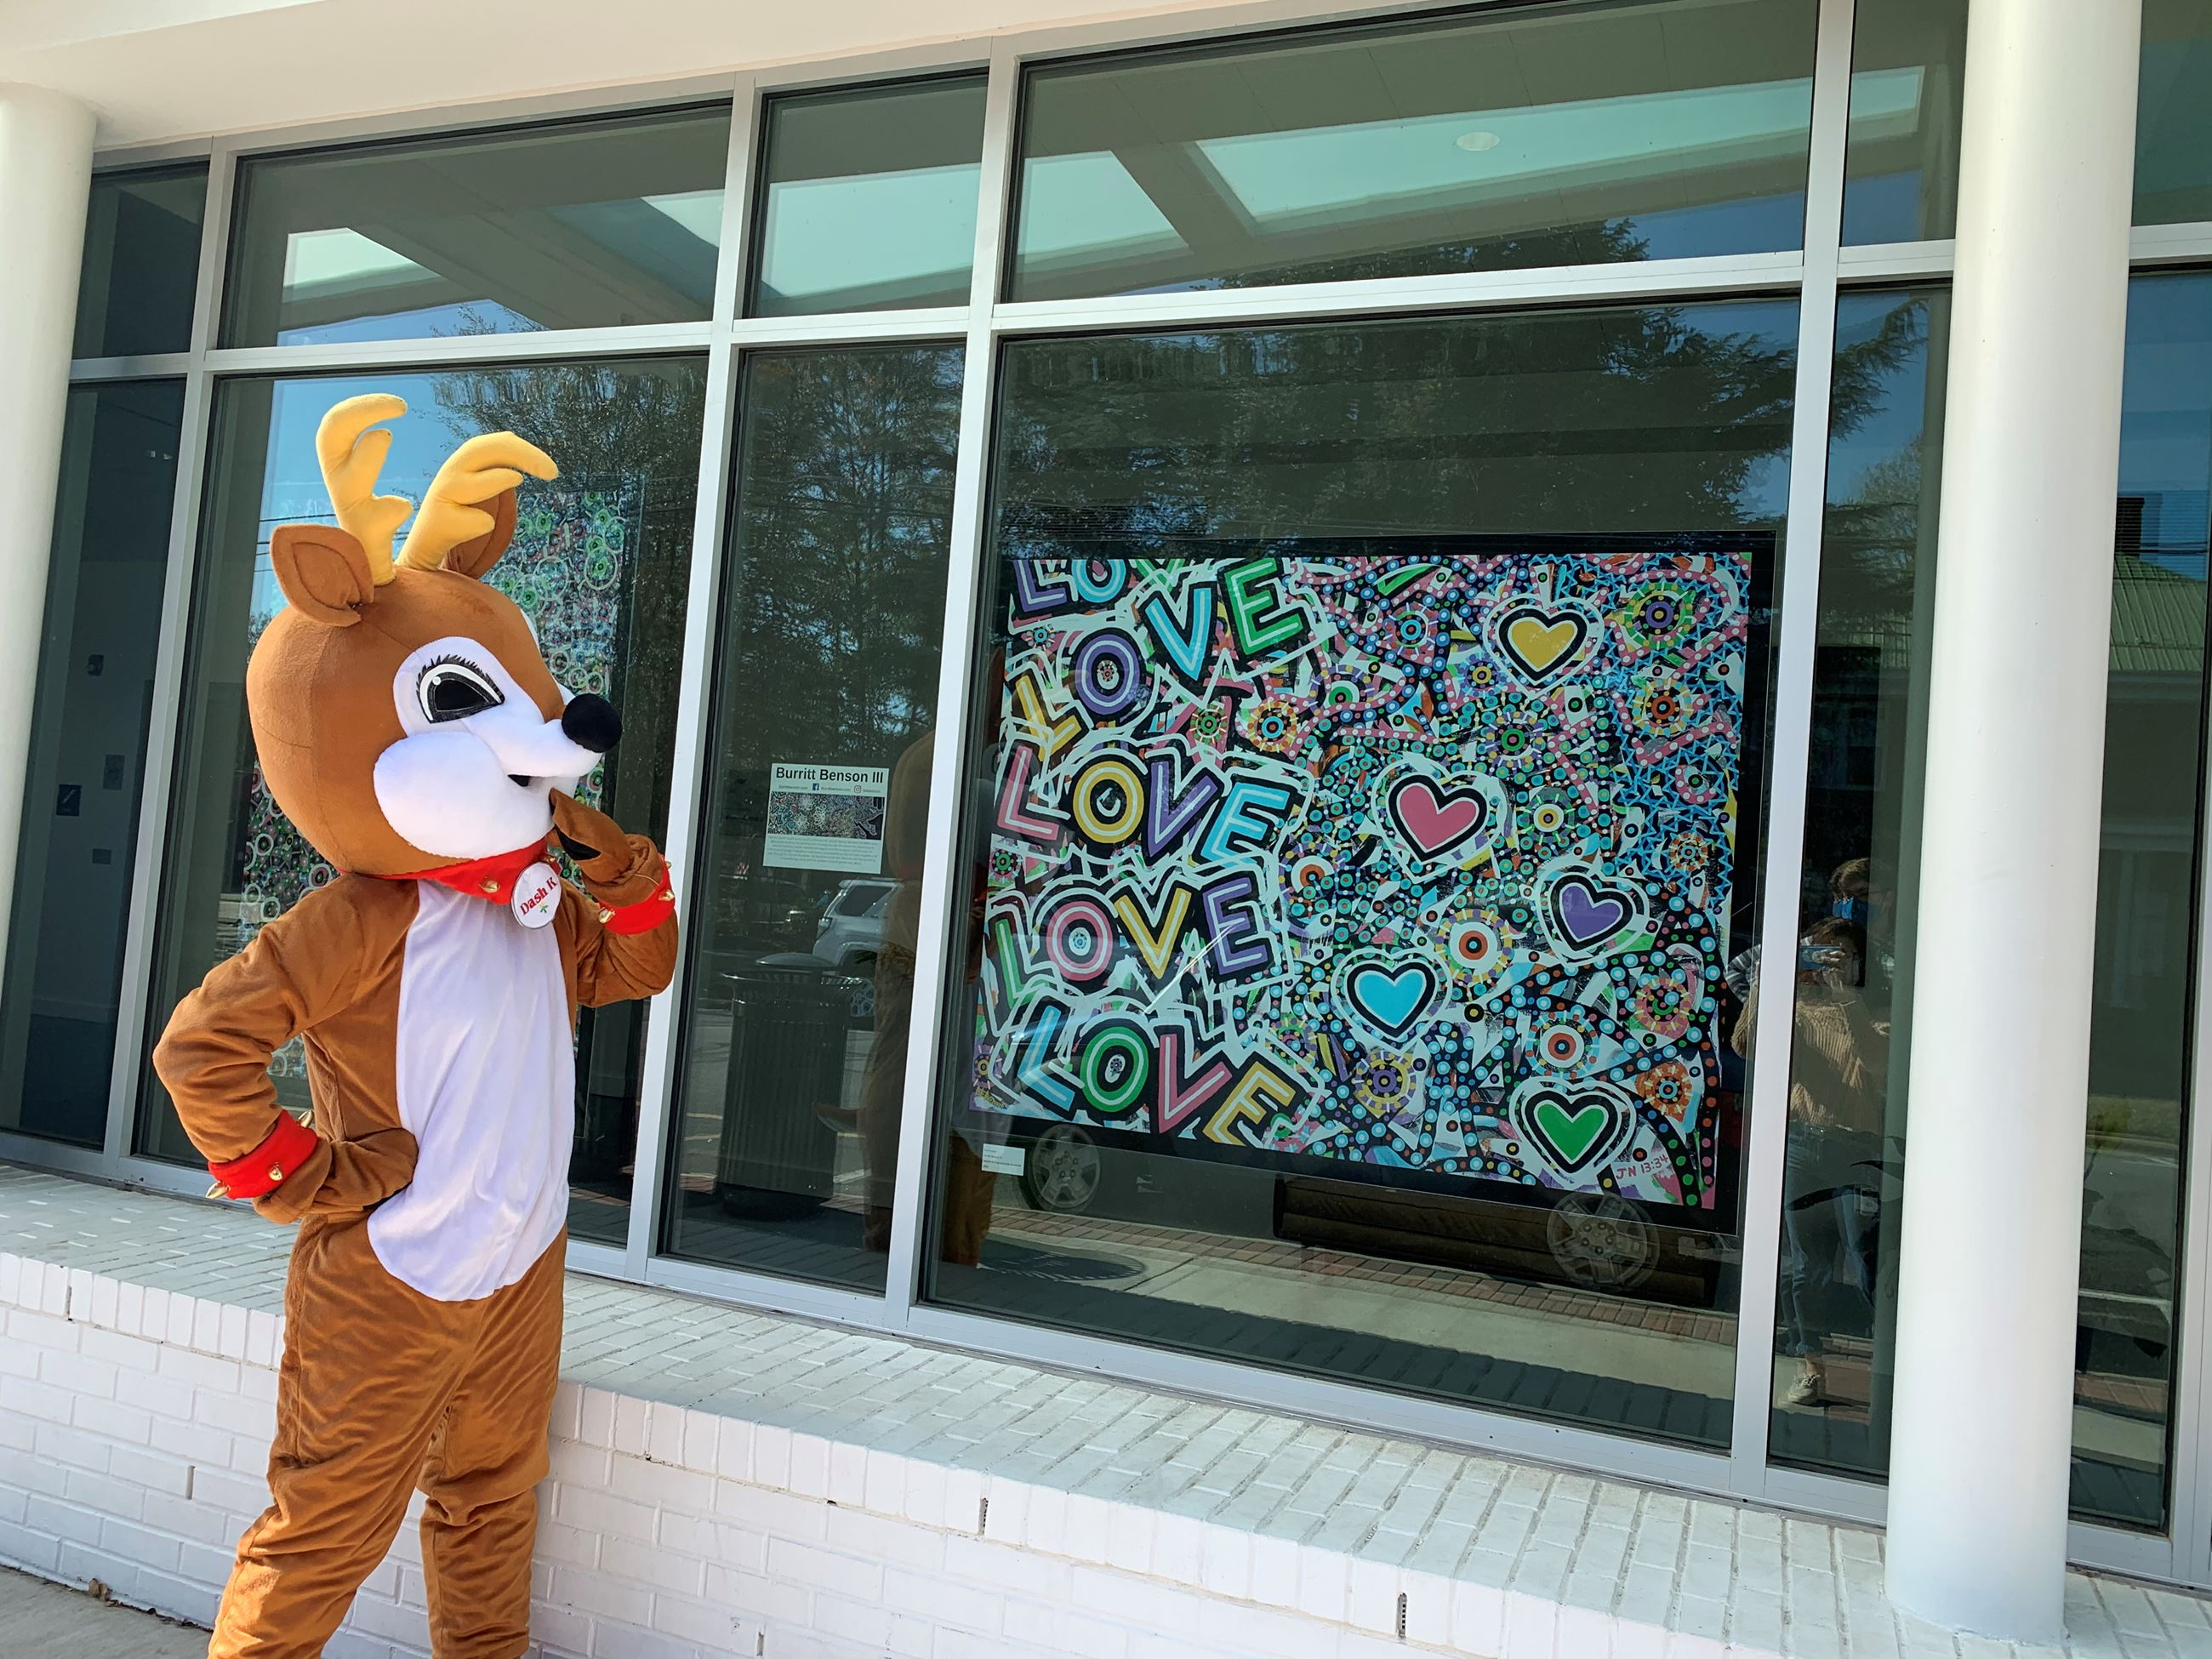 Dasher the reindeer standing outside the arts center looking at a painting